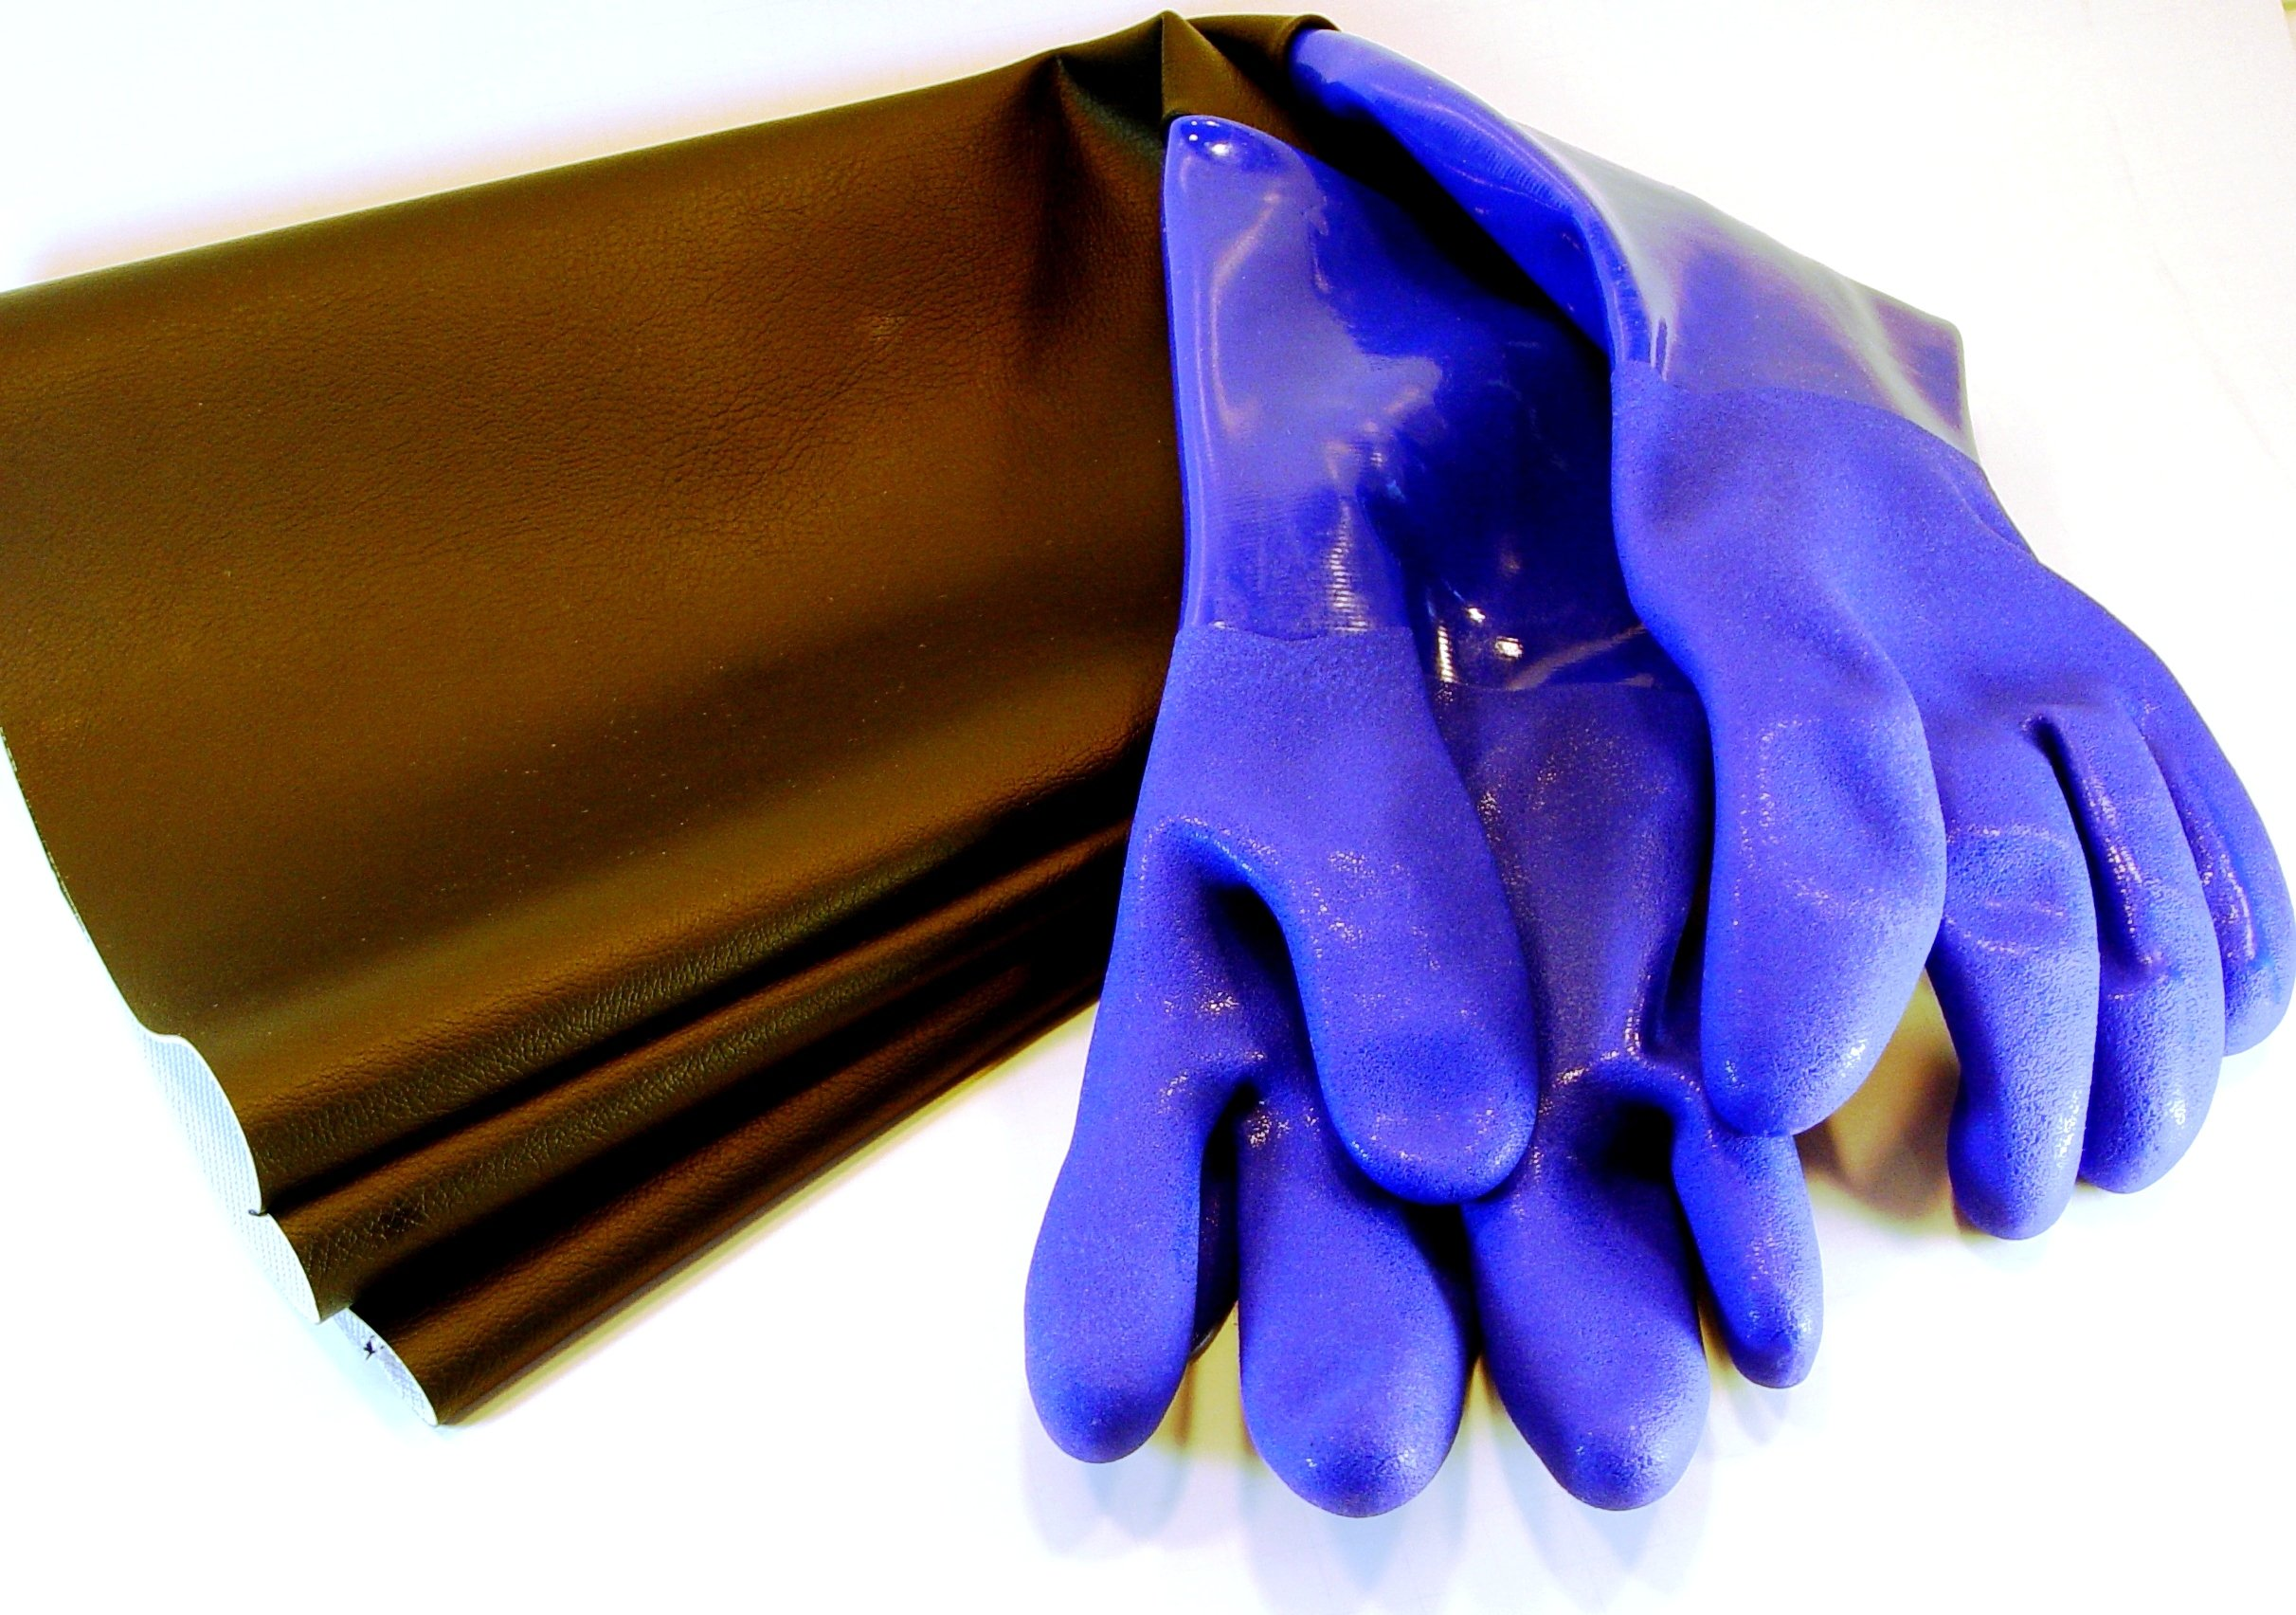 GLOVES for Sandblaster Blast Cabinet - 1 Pair - 24'' x 6'' - SIZE: LARGE - Made in USA by Tacoma Company